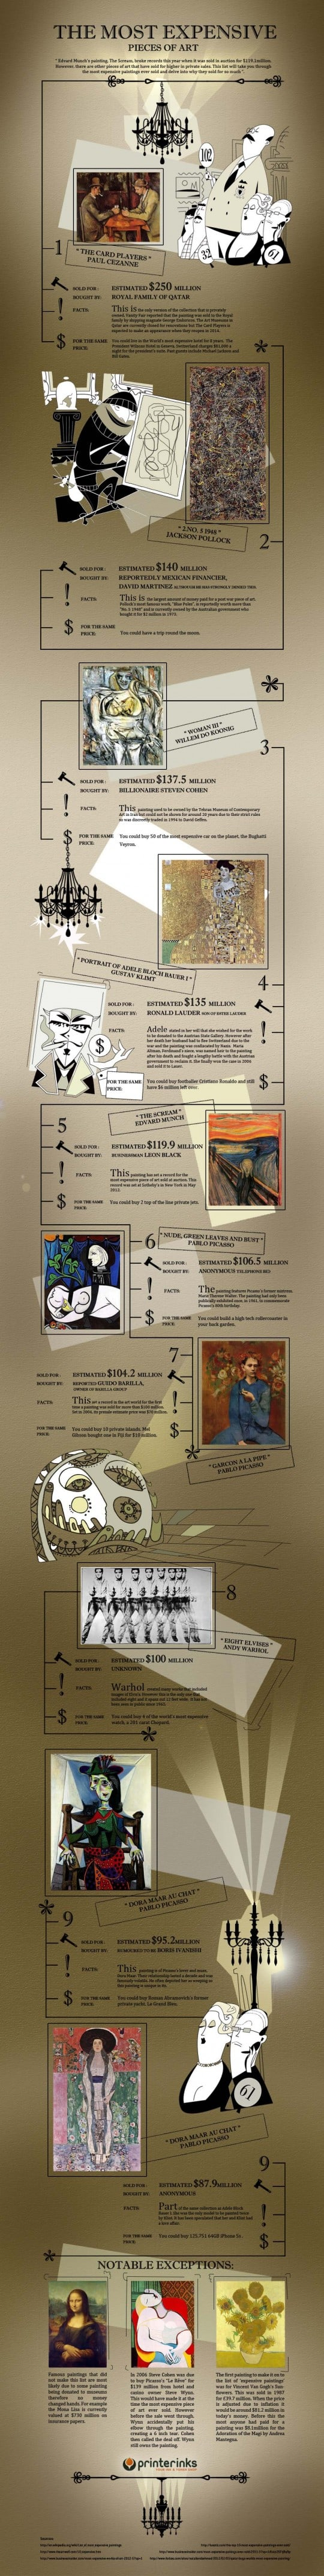 the most expensive pieces of art infographic